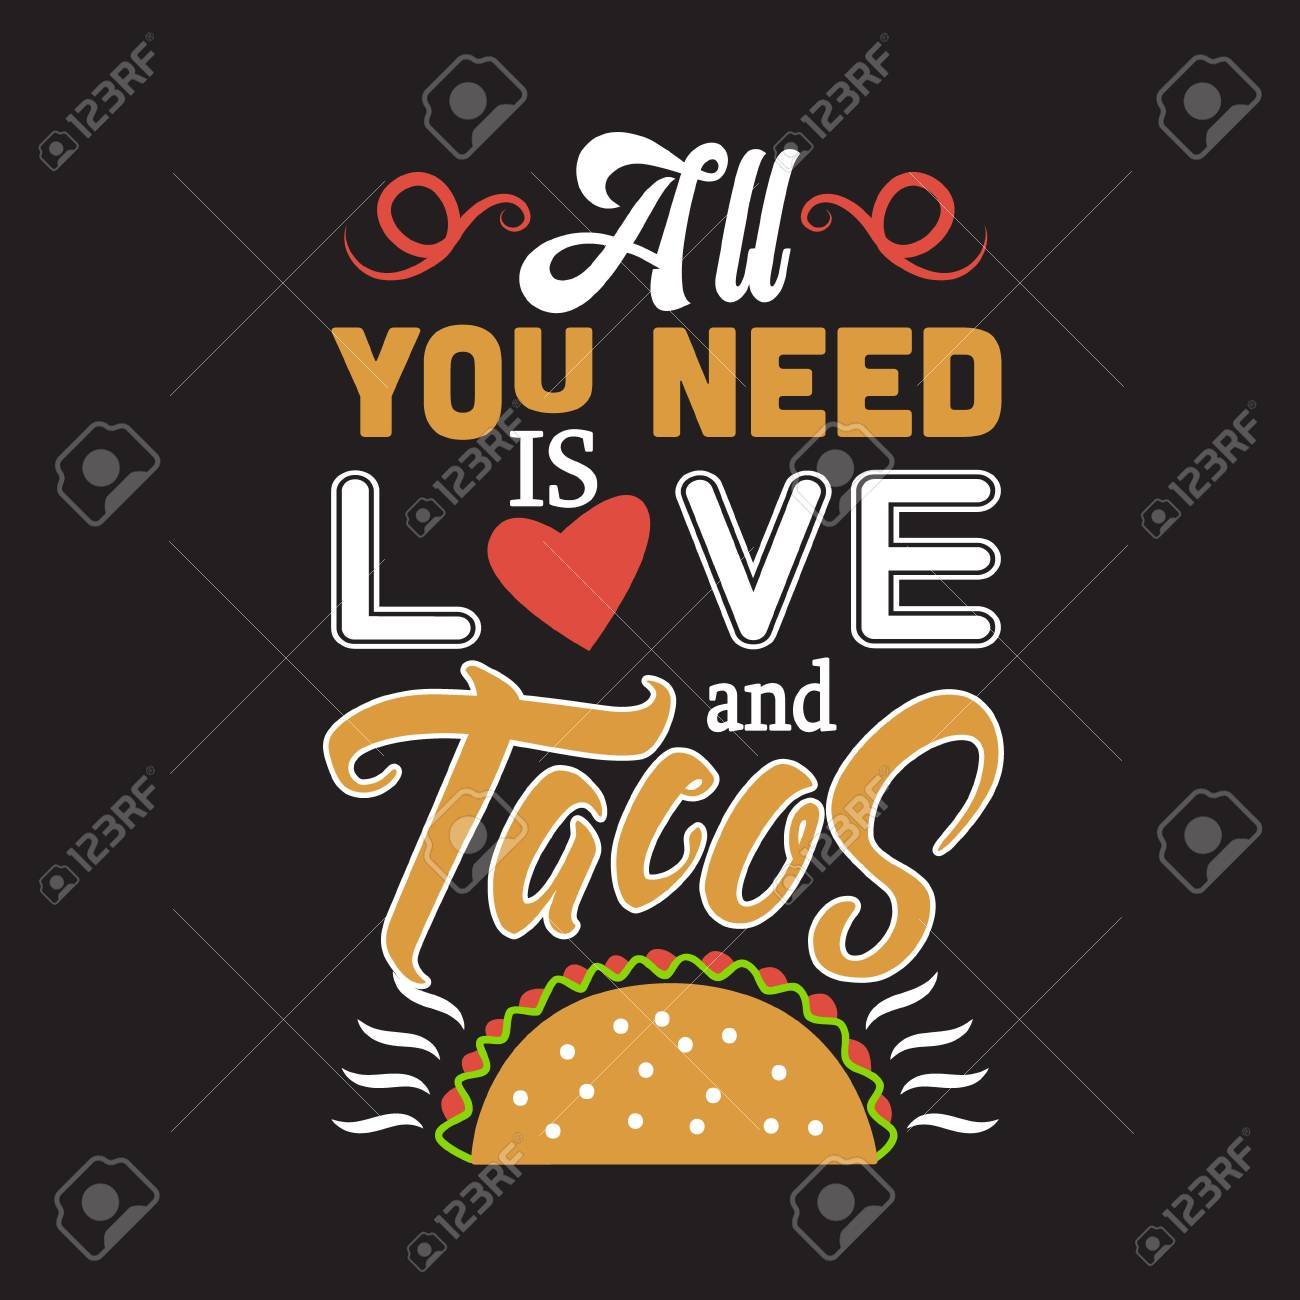 Taco Quote All You Need Is Love And Tacos Royalty Free Cliparts Vectors And Stock Illustration Image 124794686